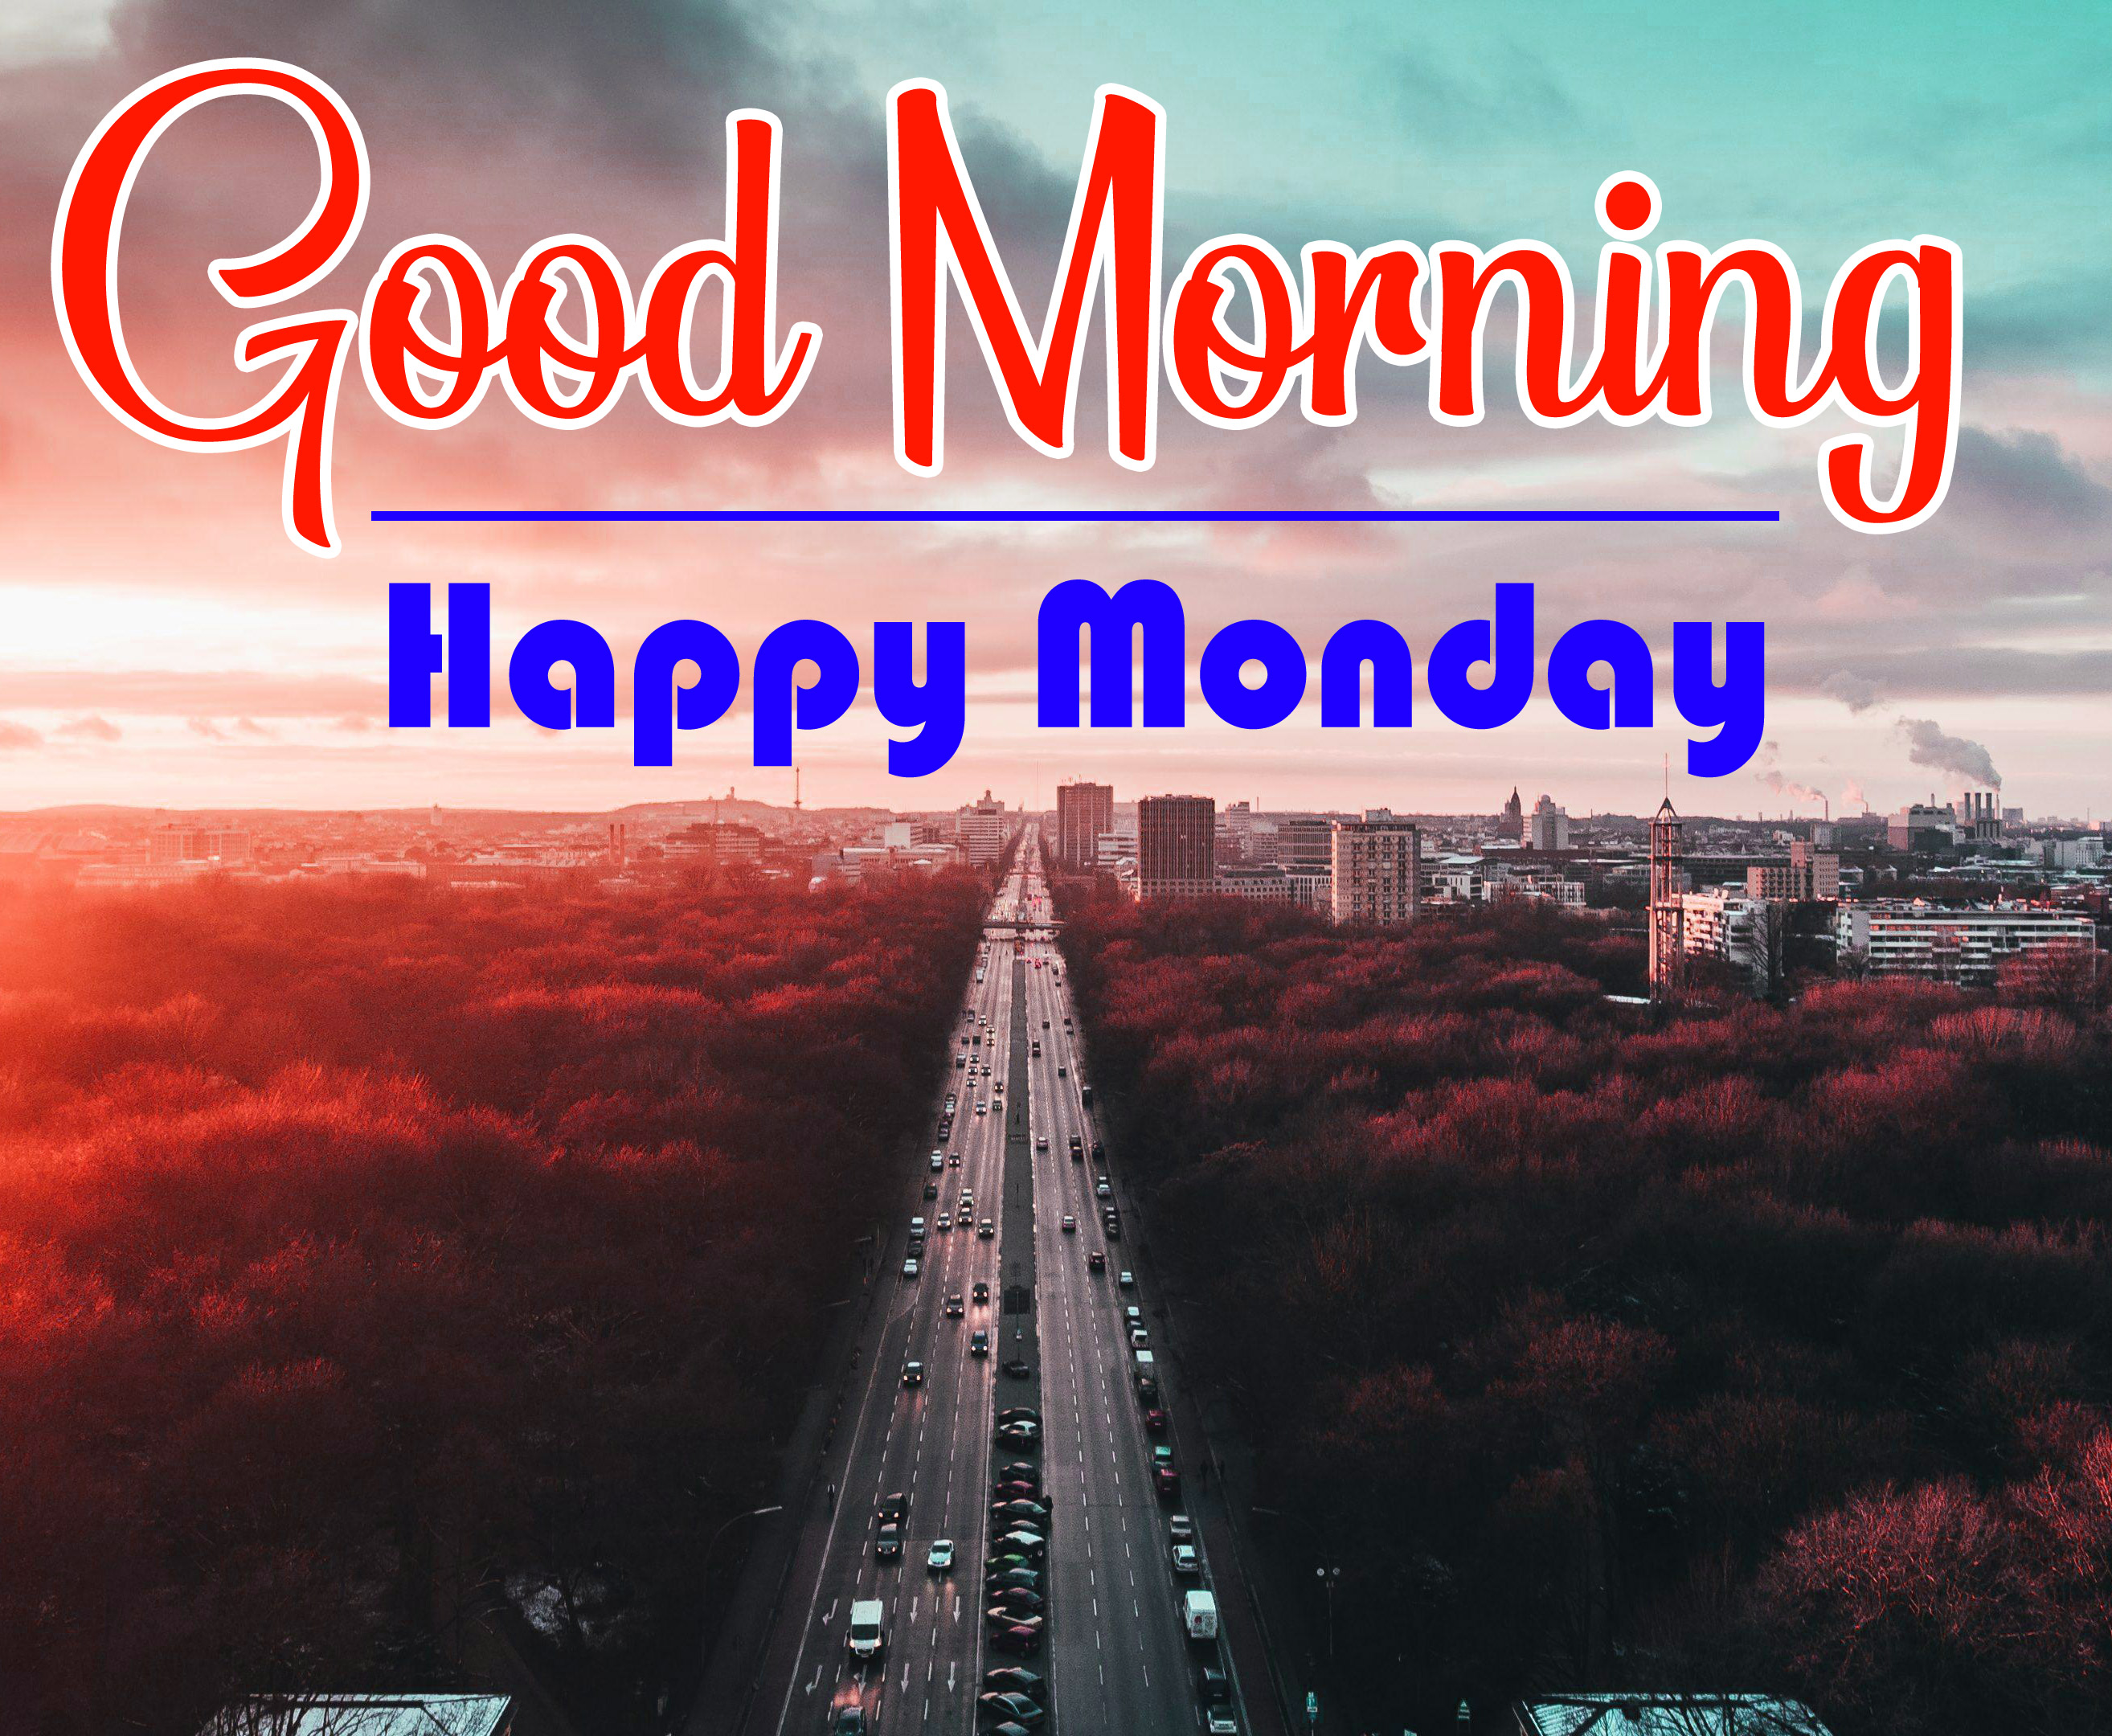 Monday Good Morning Images pics photo free download